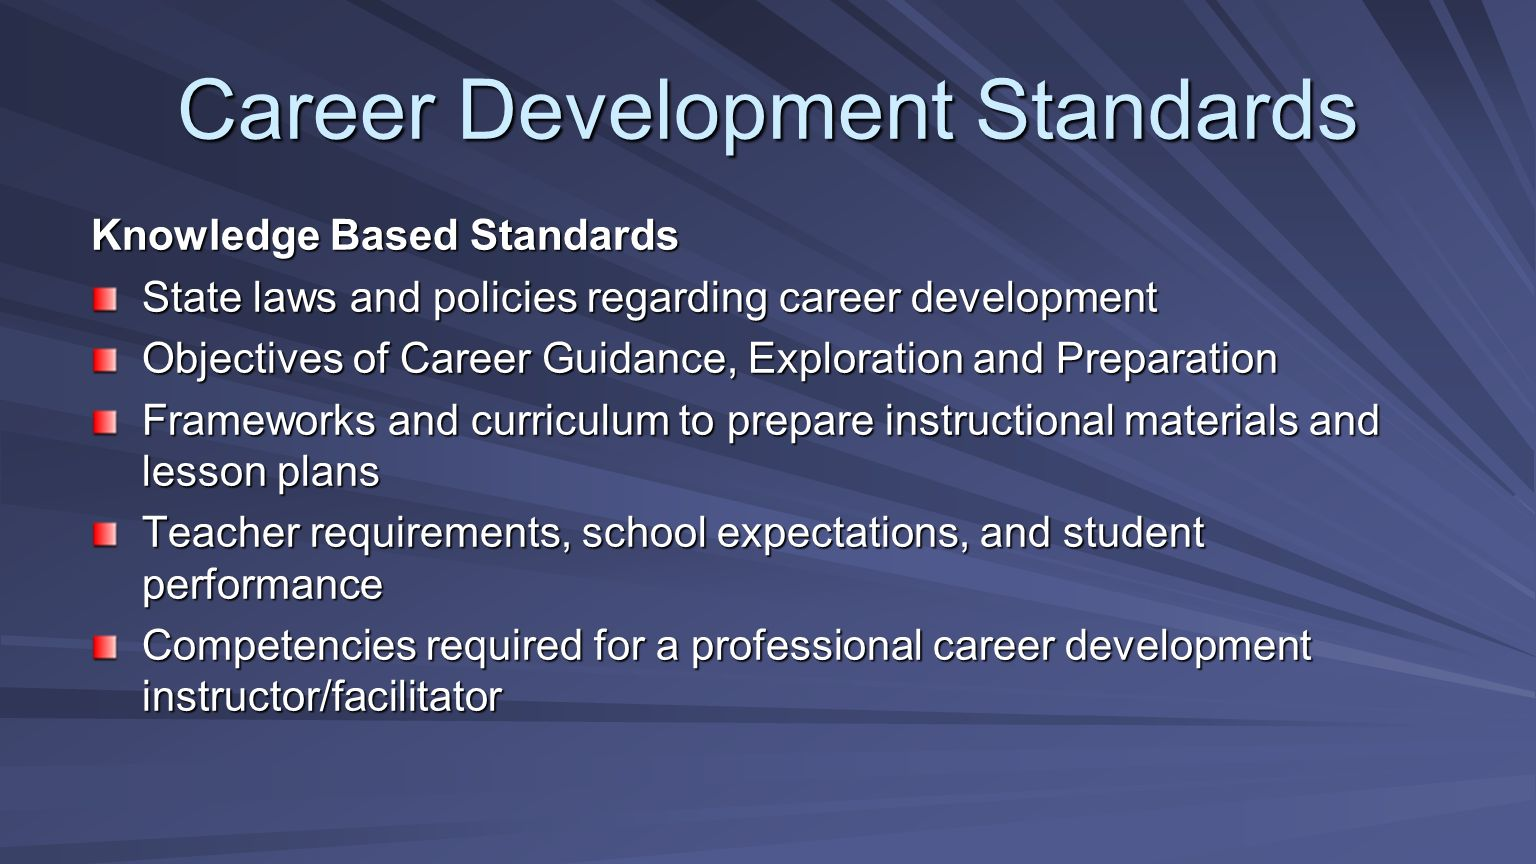 Career Development Standards Knowledge Based Standards State laws and policies regarding career development Objectives of Career Guidance, Exploration